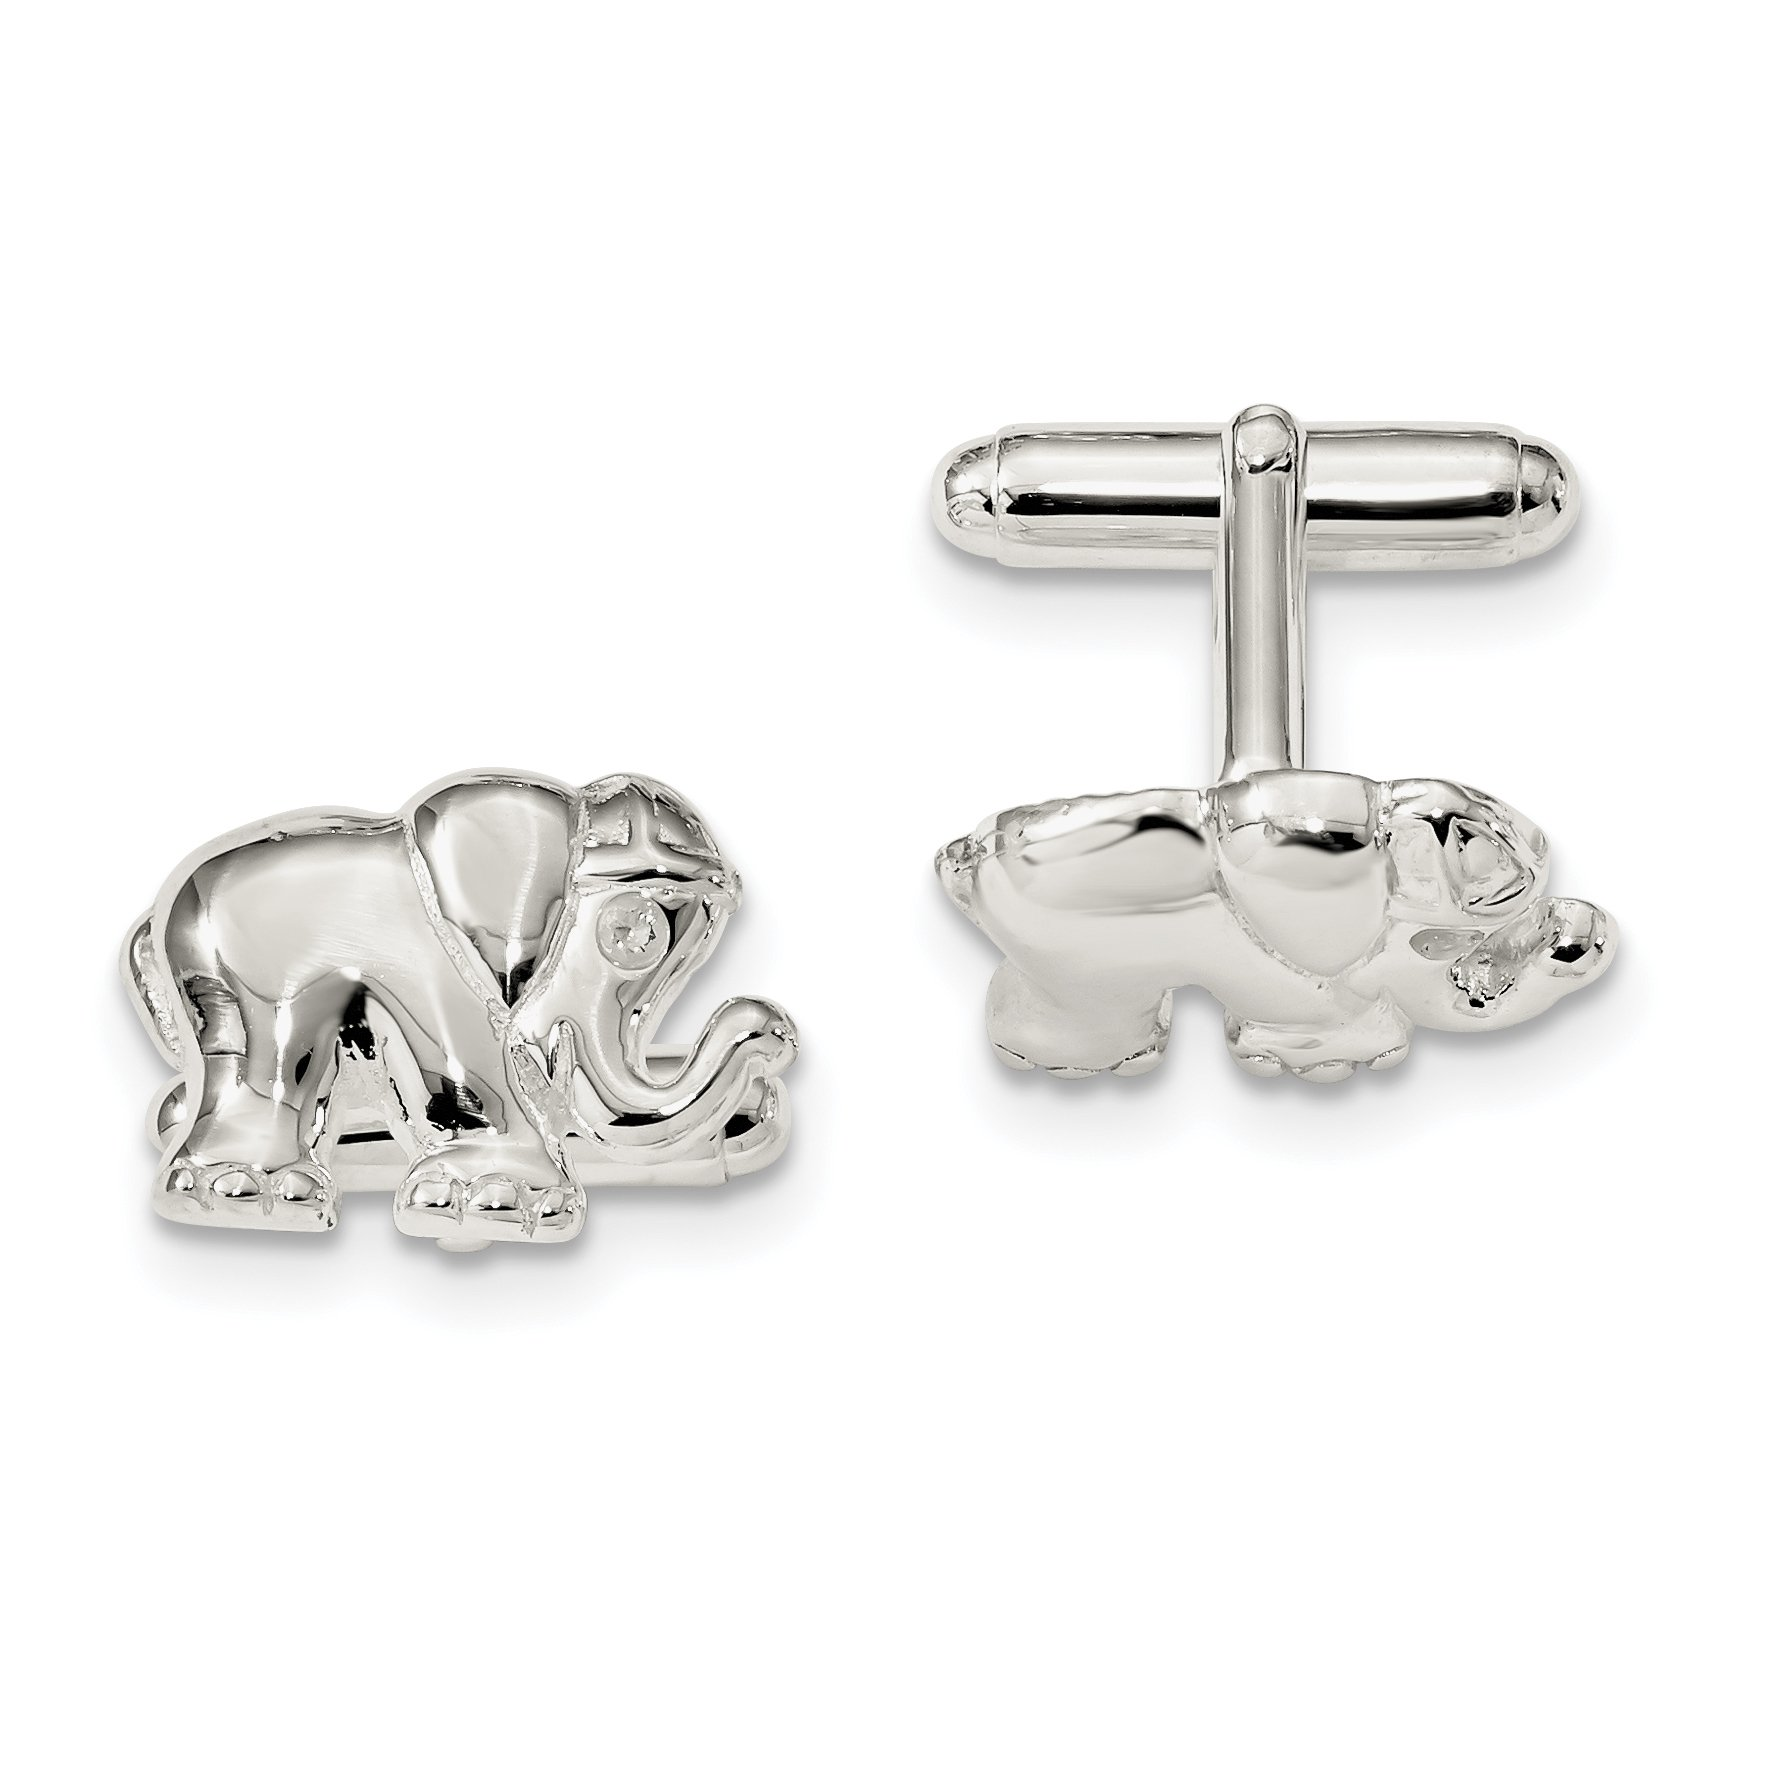 ICE CARATS 925 Sterling Silver Cubic Zirconia Cz Elephant Cuff Links Mens Cufflinks Link Fine Jewelry Dad Mens Gift